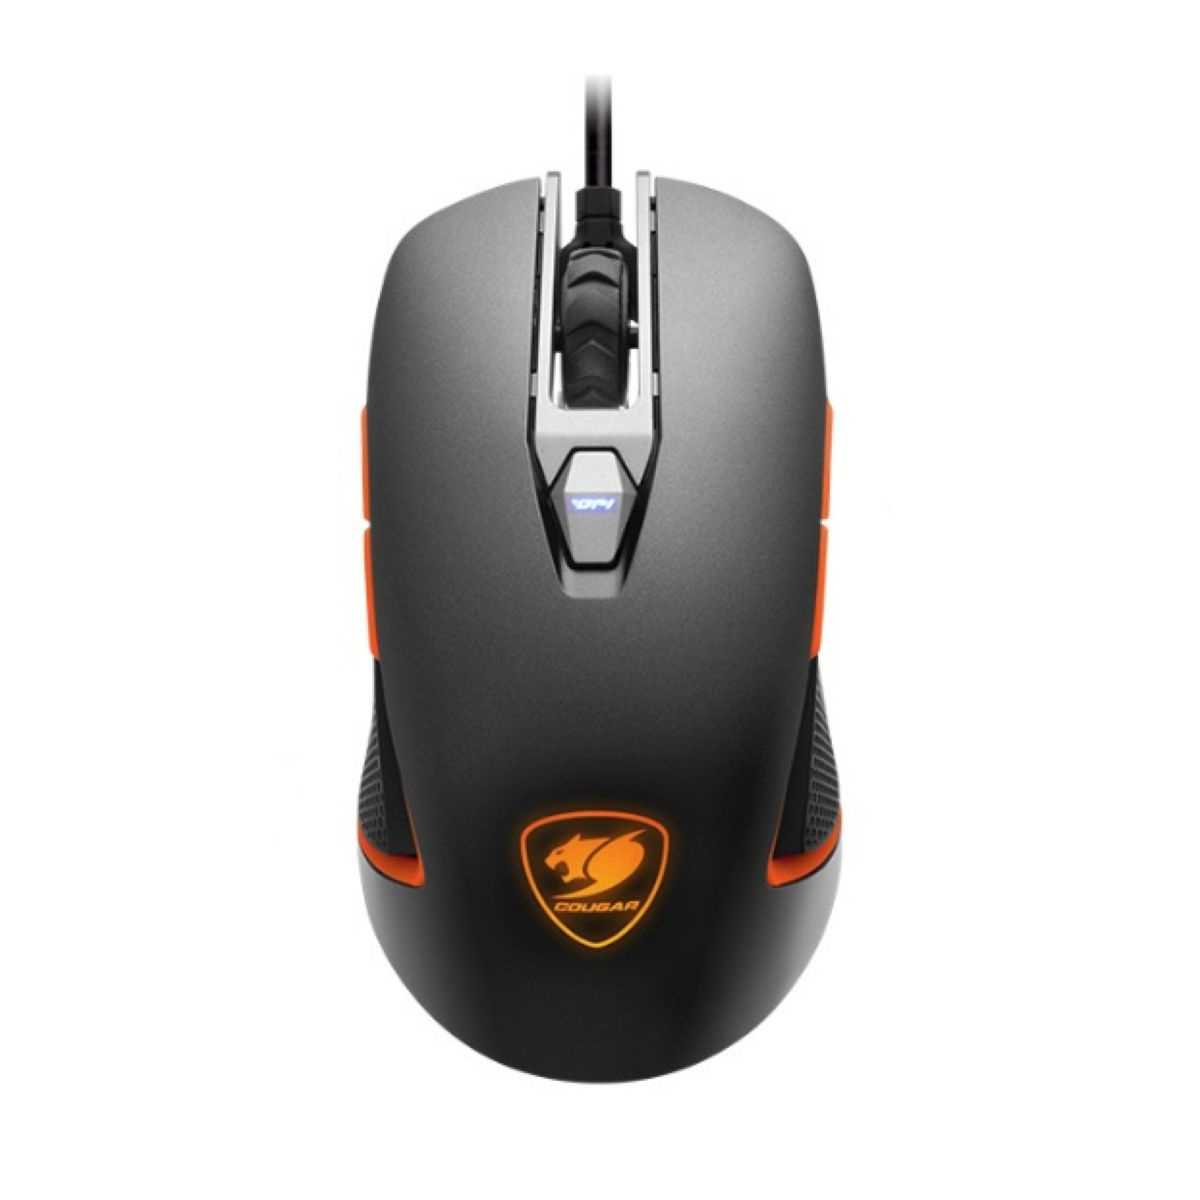 Mouse Cougar 450m Iron-Grey Edition